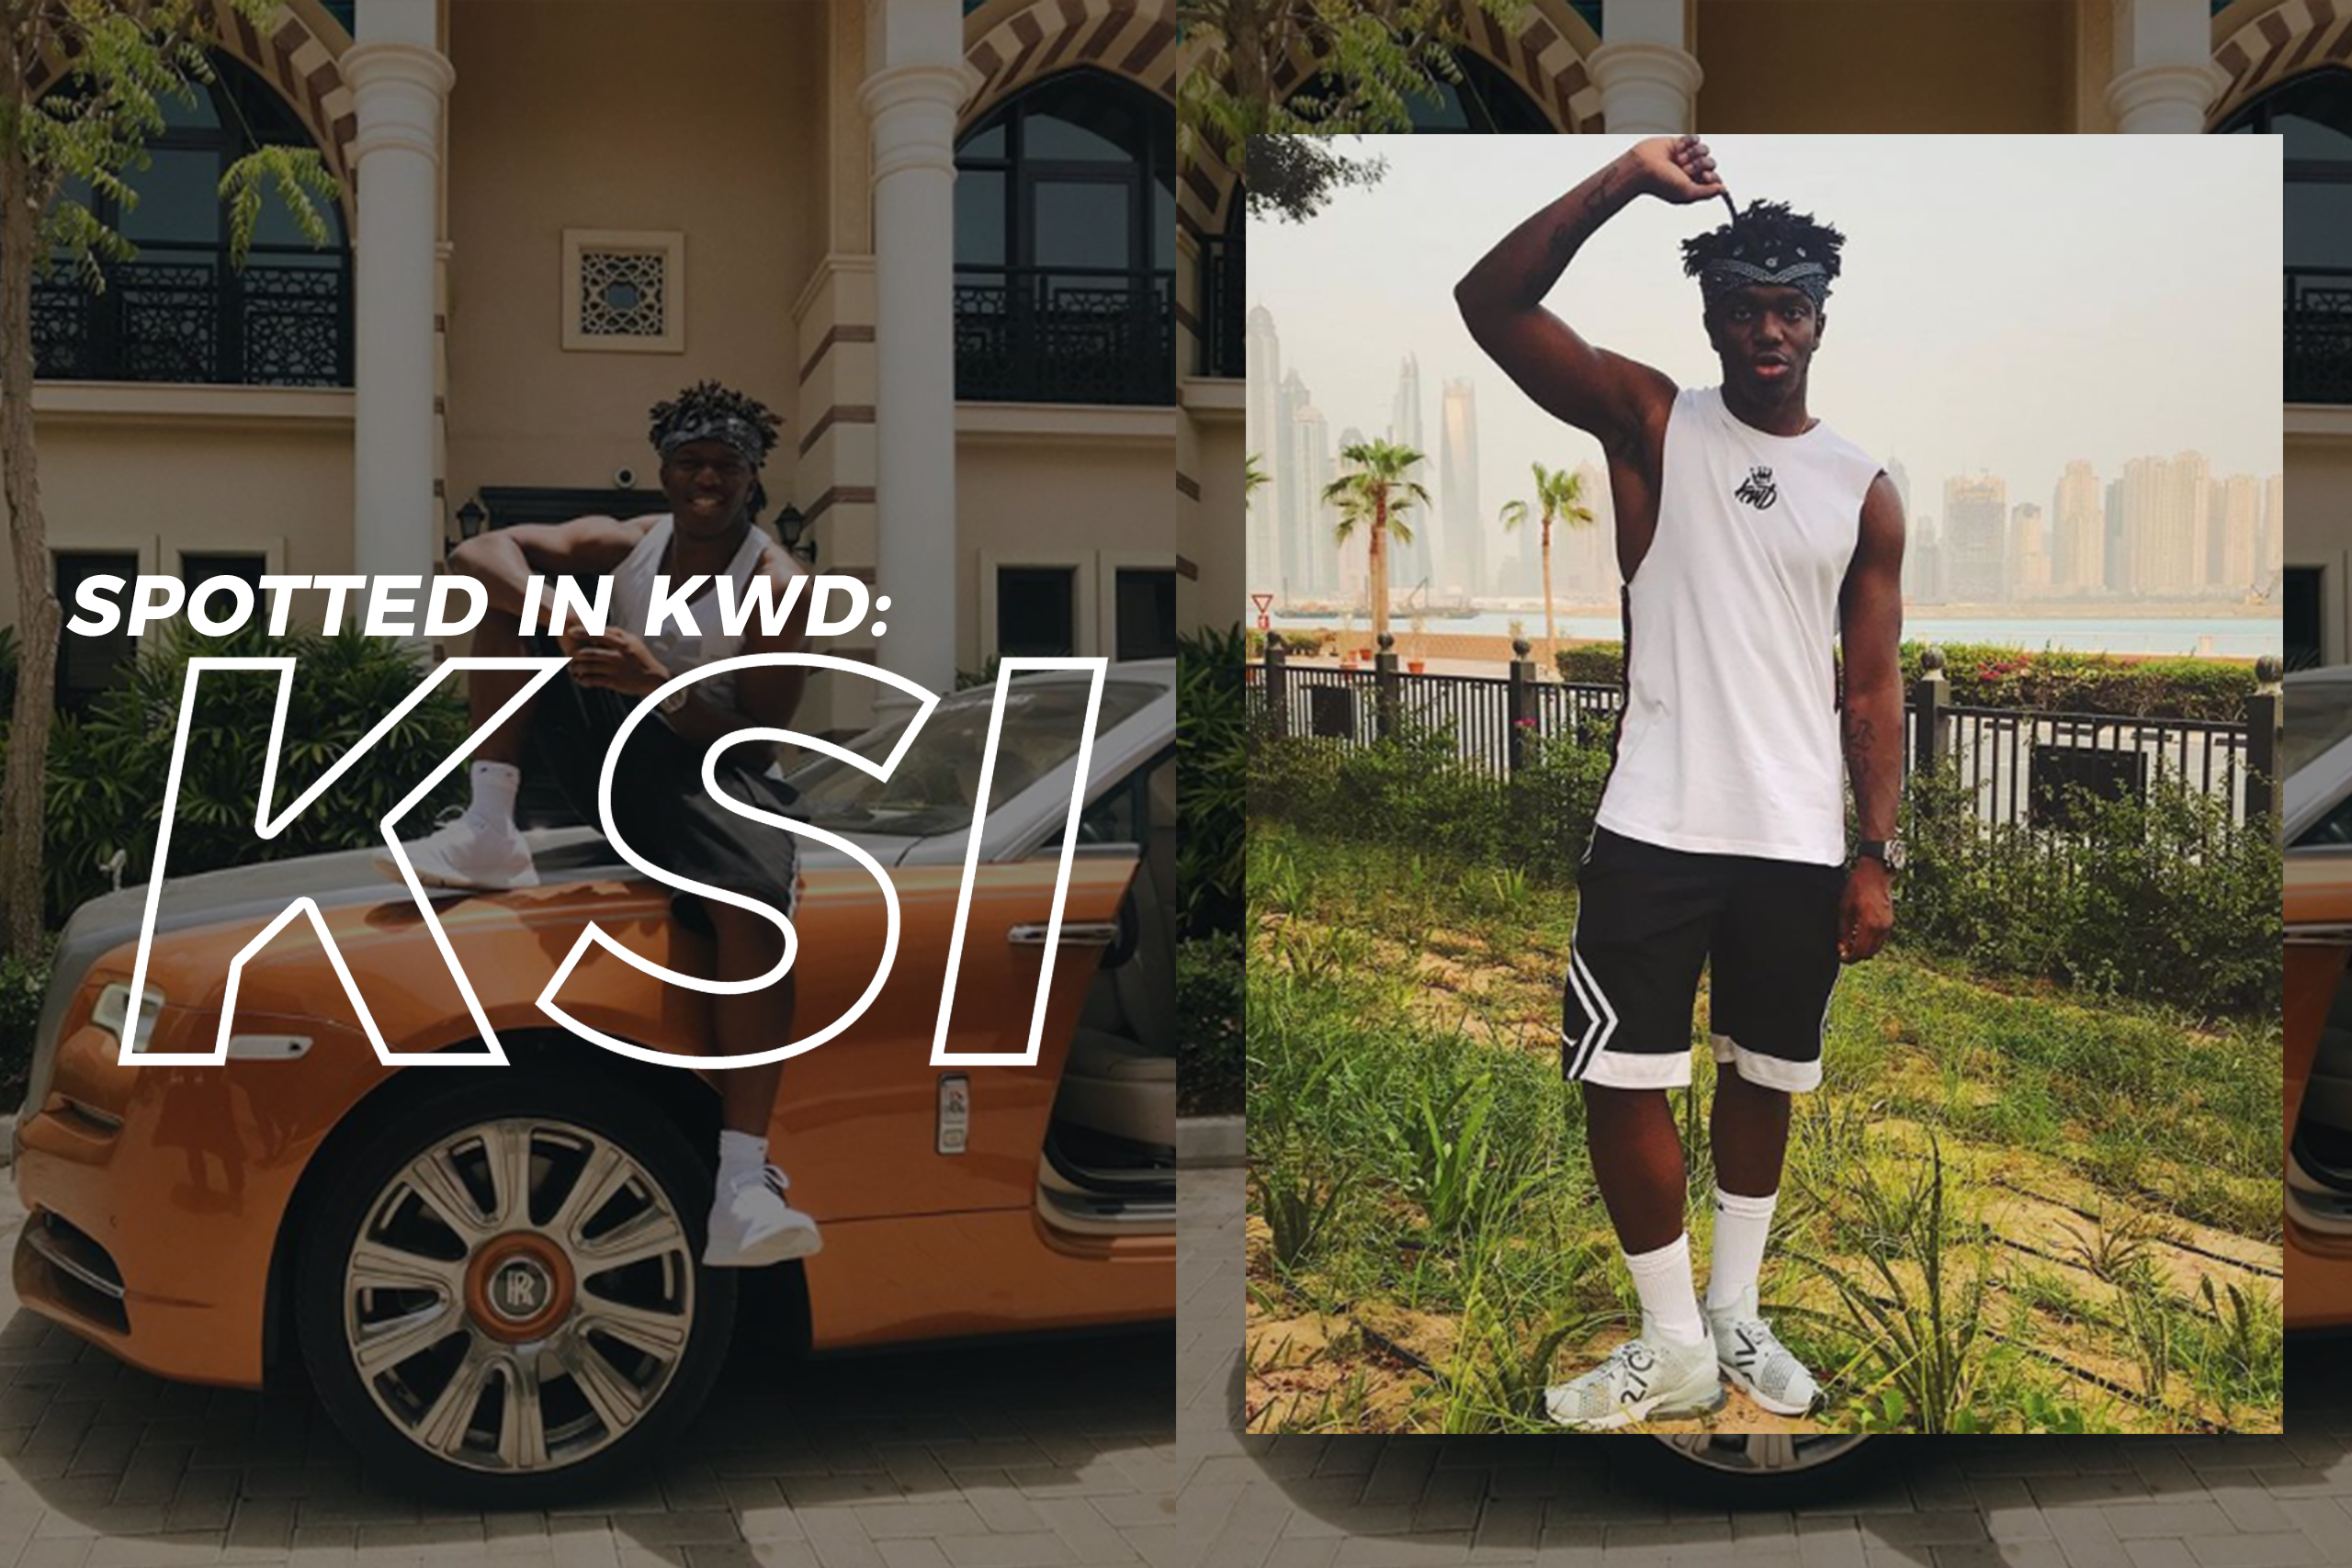 Spotted in KWD: KSI